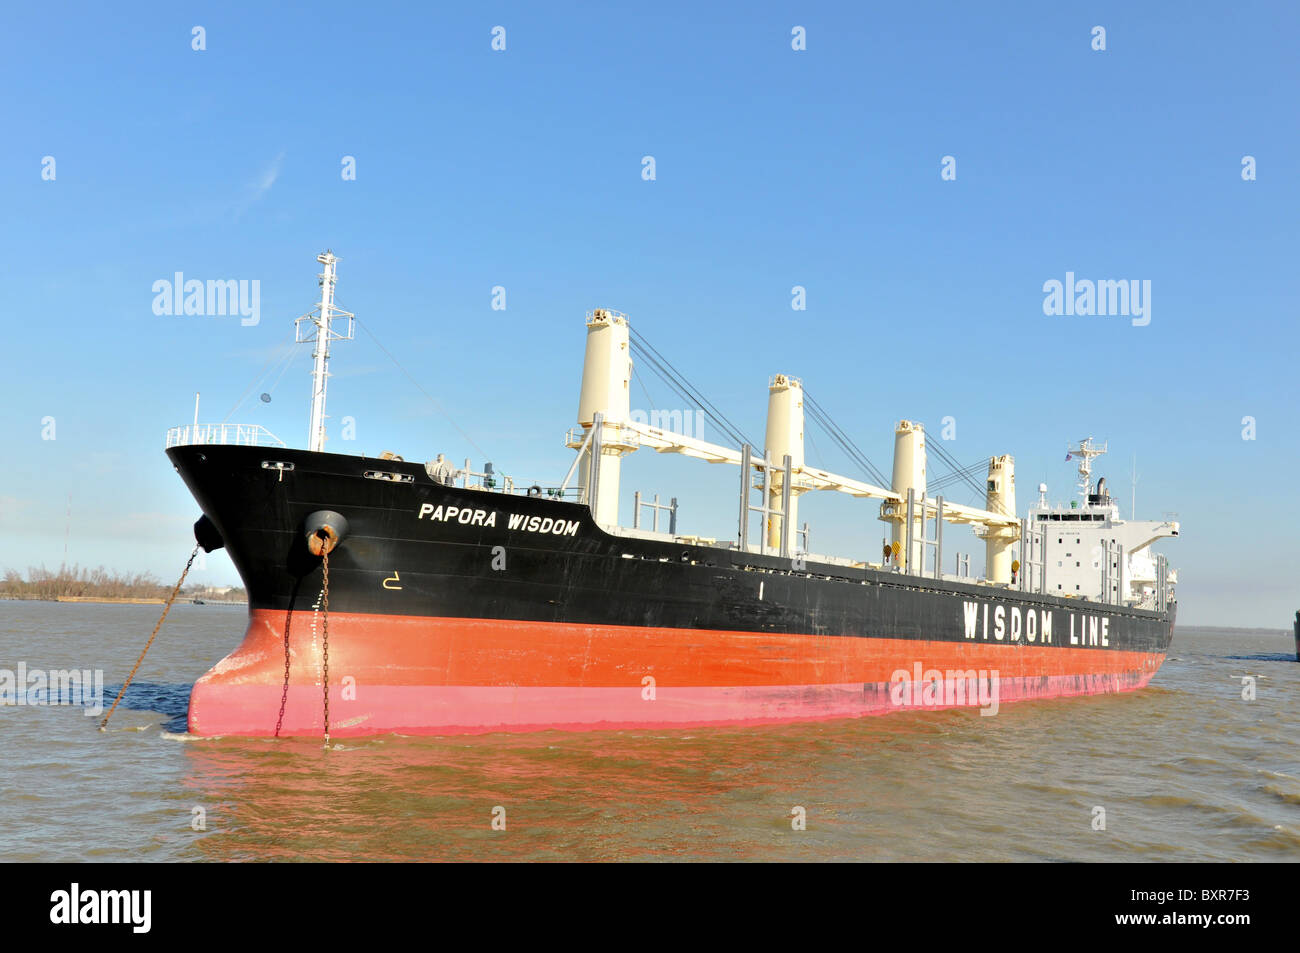 Empty bulk cargo ship at anchor, Mississippi River, New Orleans, Louisiana - Stock Image